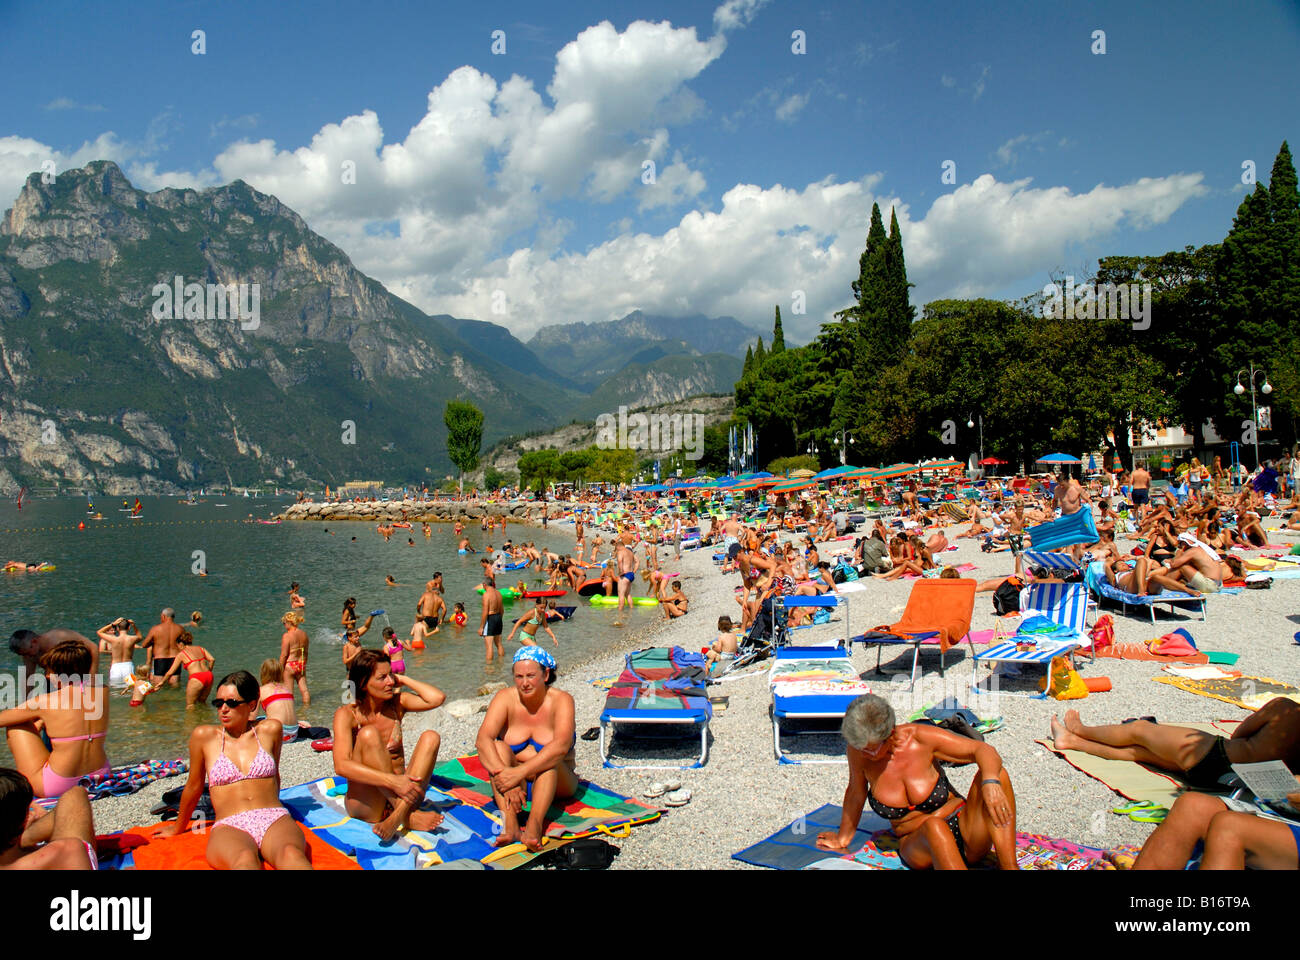 Beach Mountains And Lake In One Holiday